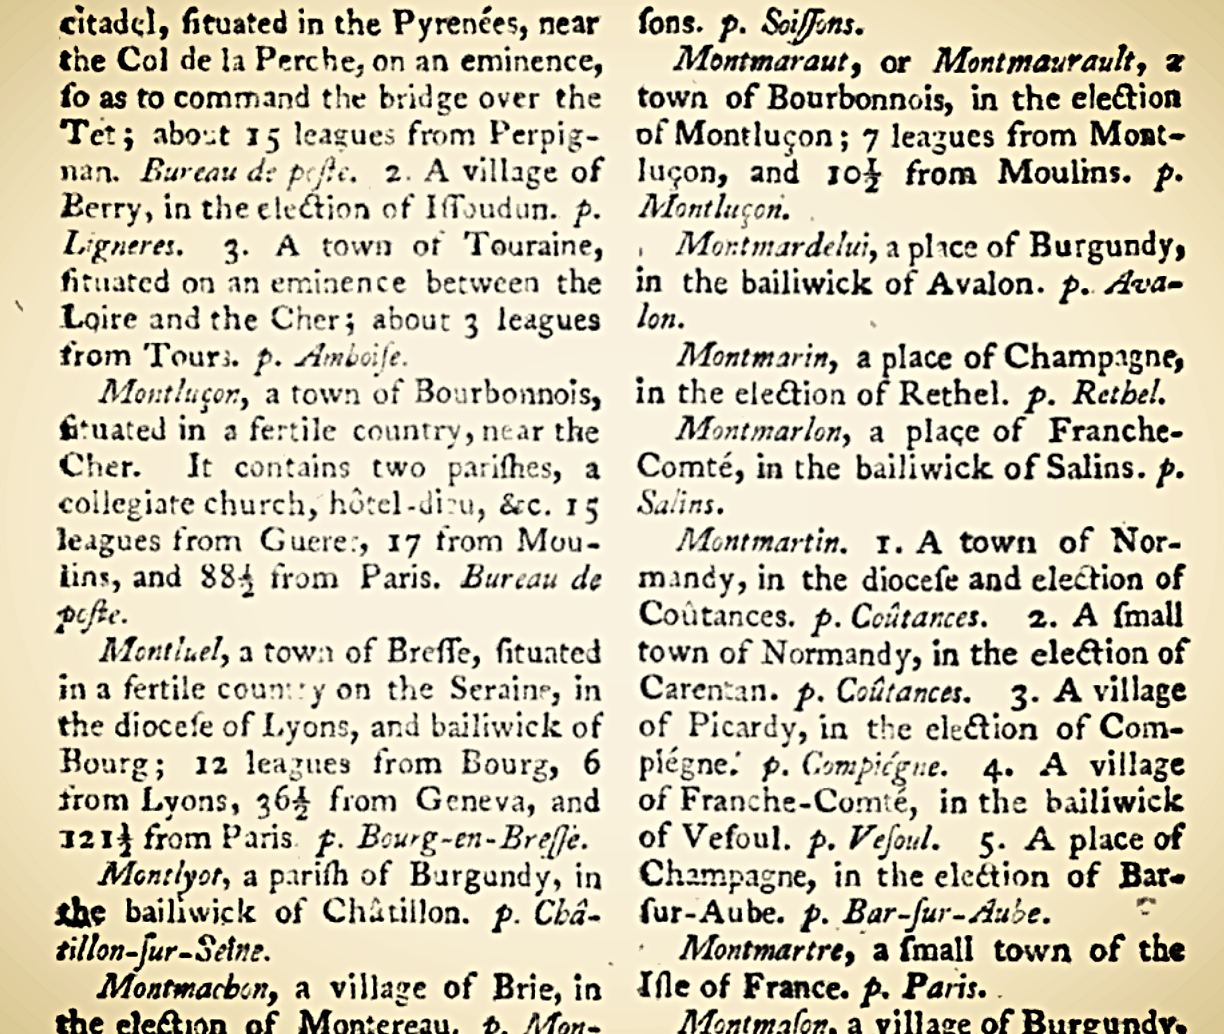 Cruttwell, Clement.  A Gazetteer of France . Vol. 2. London: G.G.J. and J. Robinson, 1793.